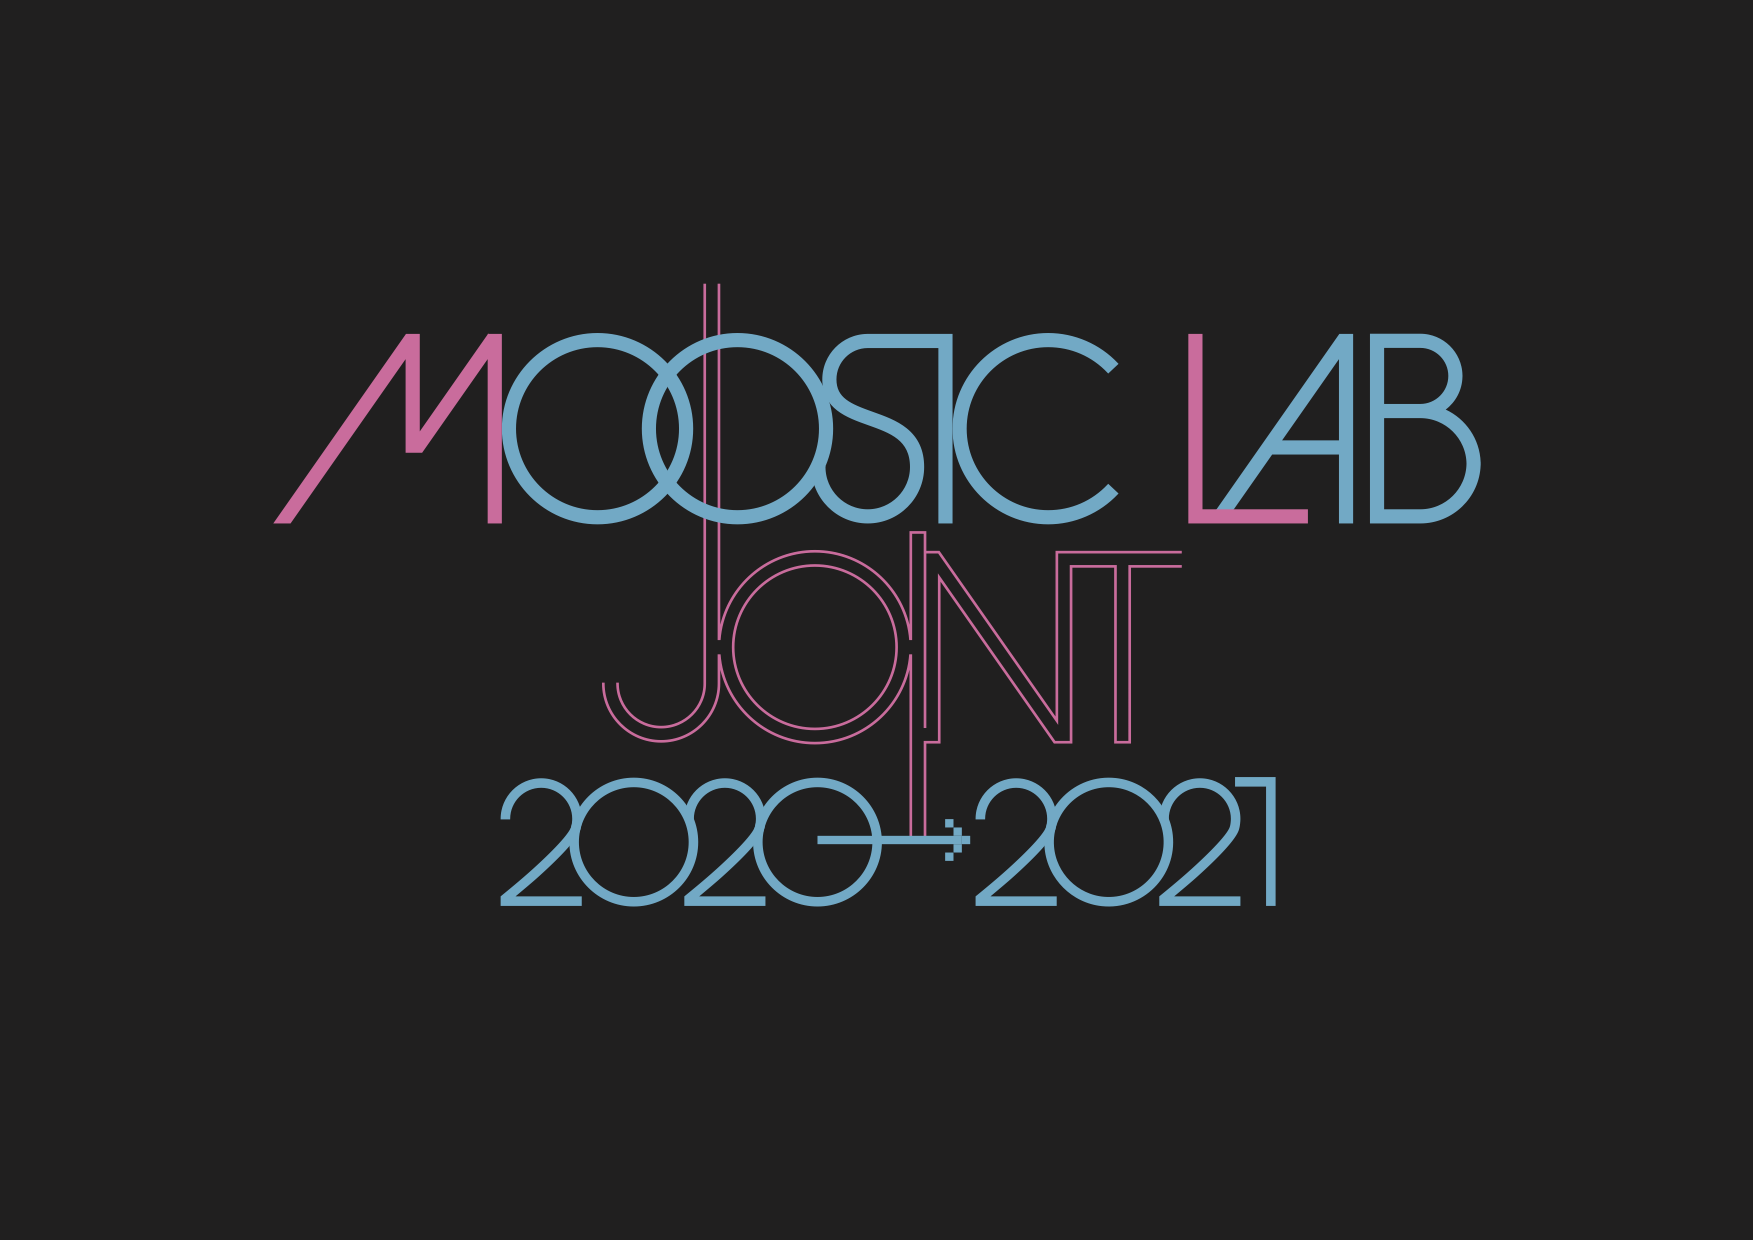 MOOSIC LAB 2019